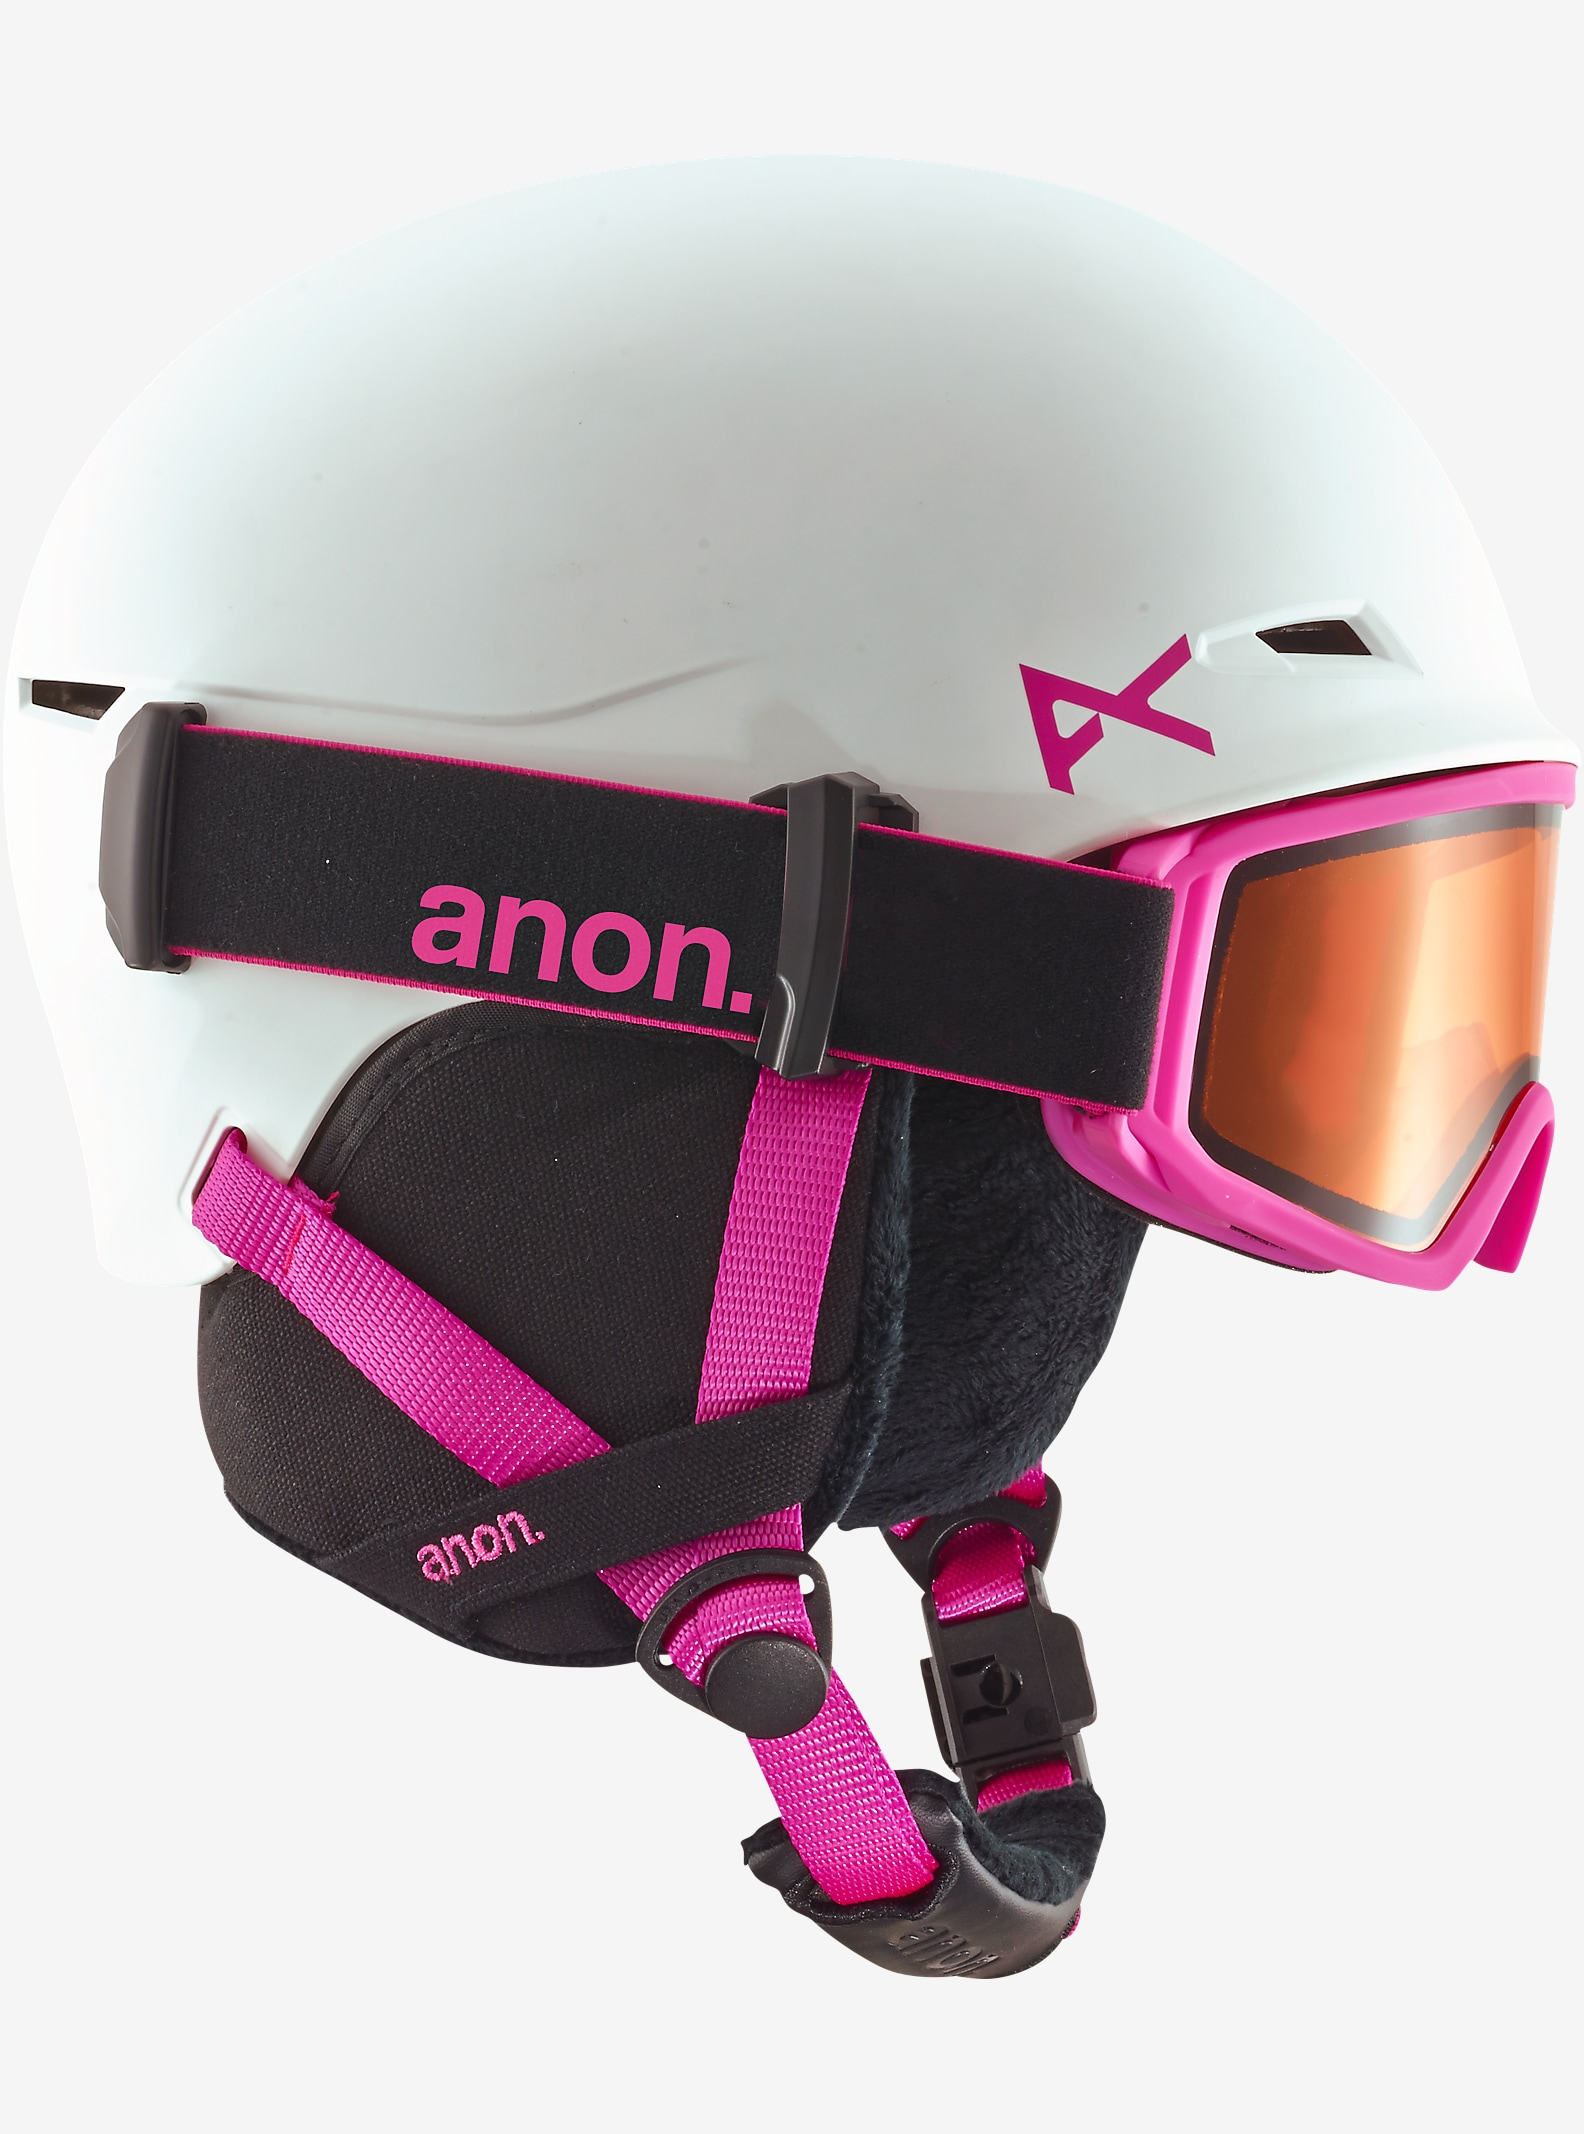 anon. Girls' Define Helmet shown in White / Pink